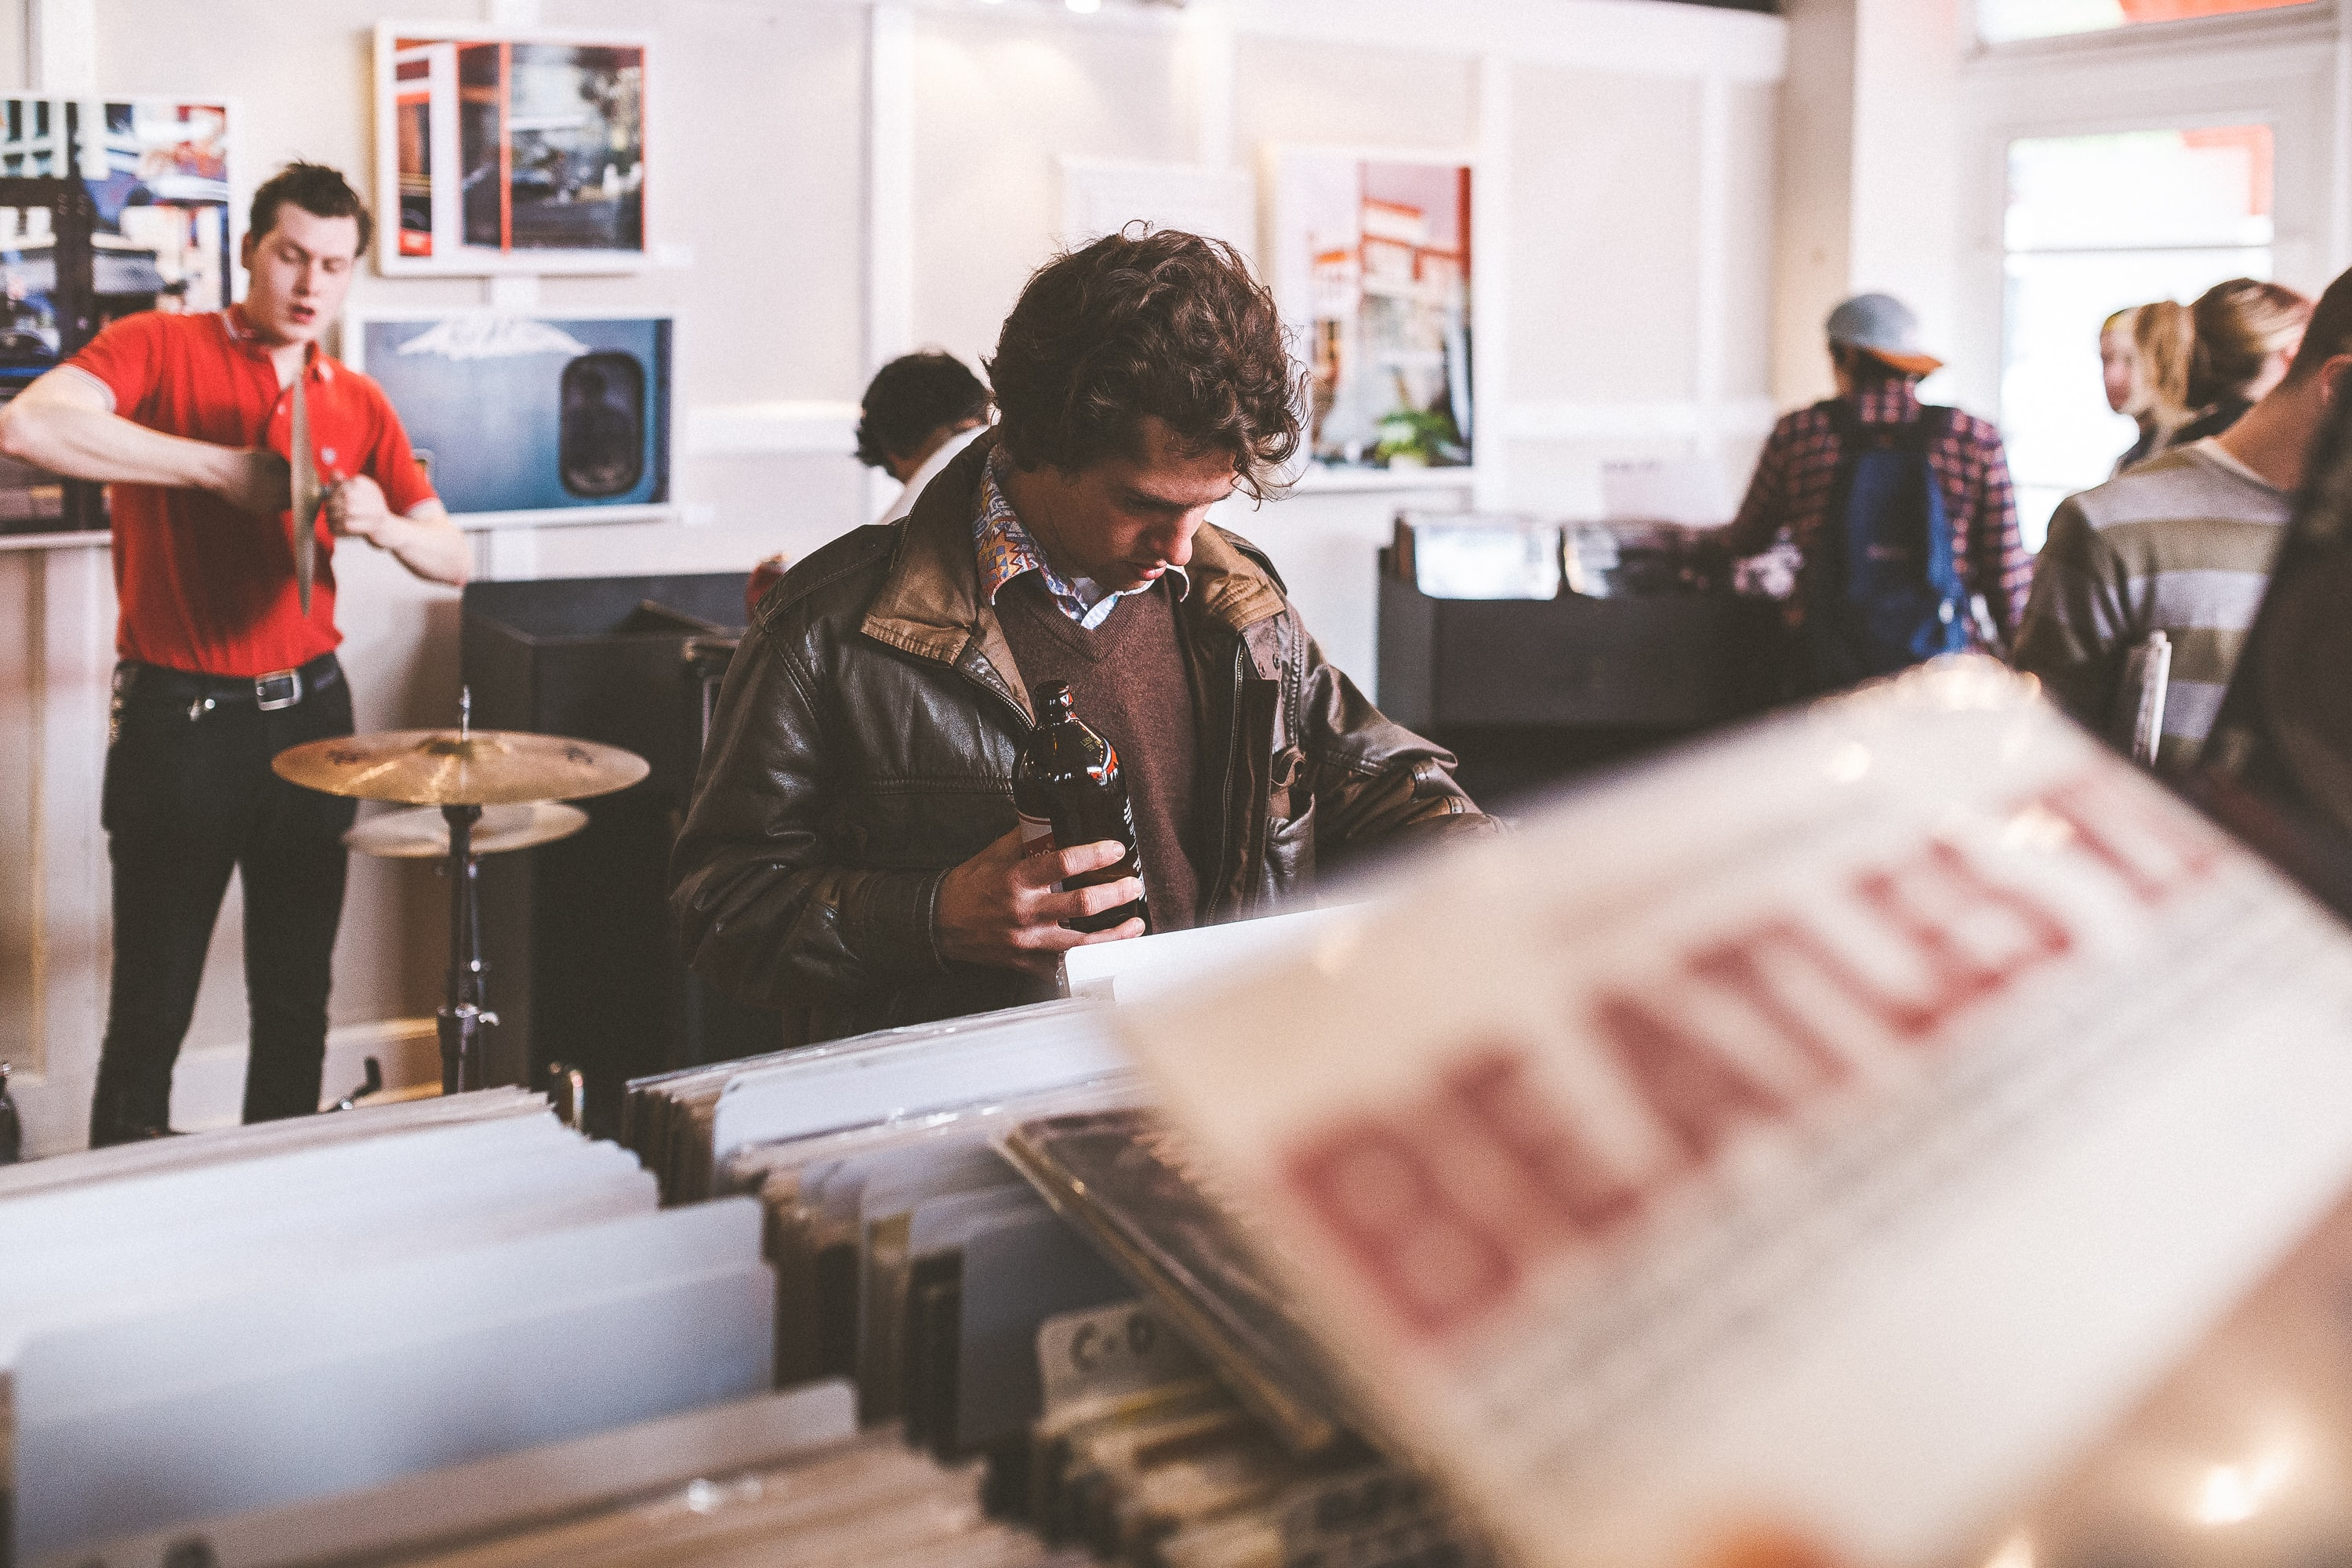 Young people browsing the vinyls at a record score